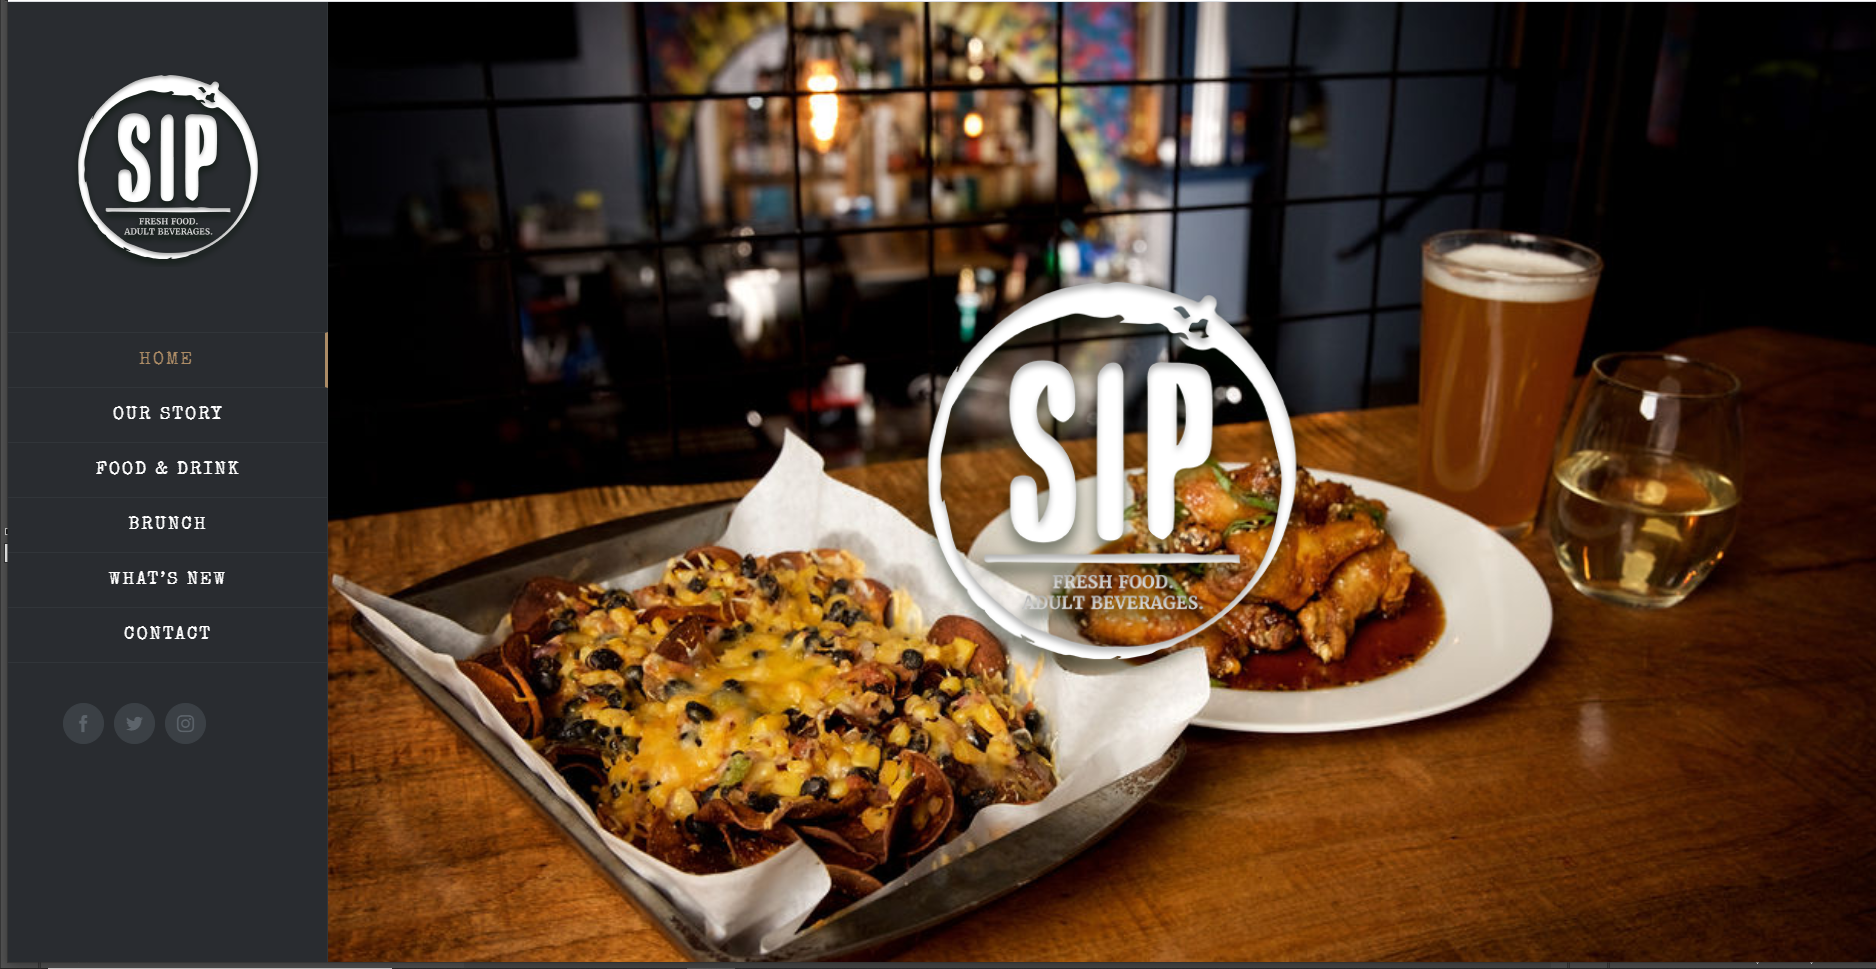 Sip's website redesign and photography by Growtrends